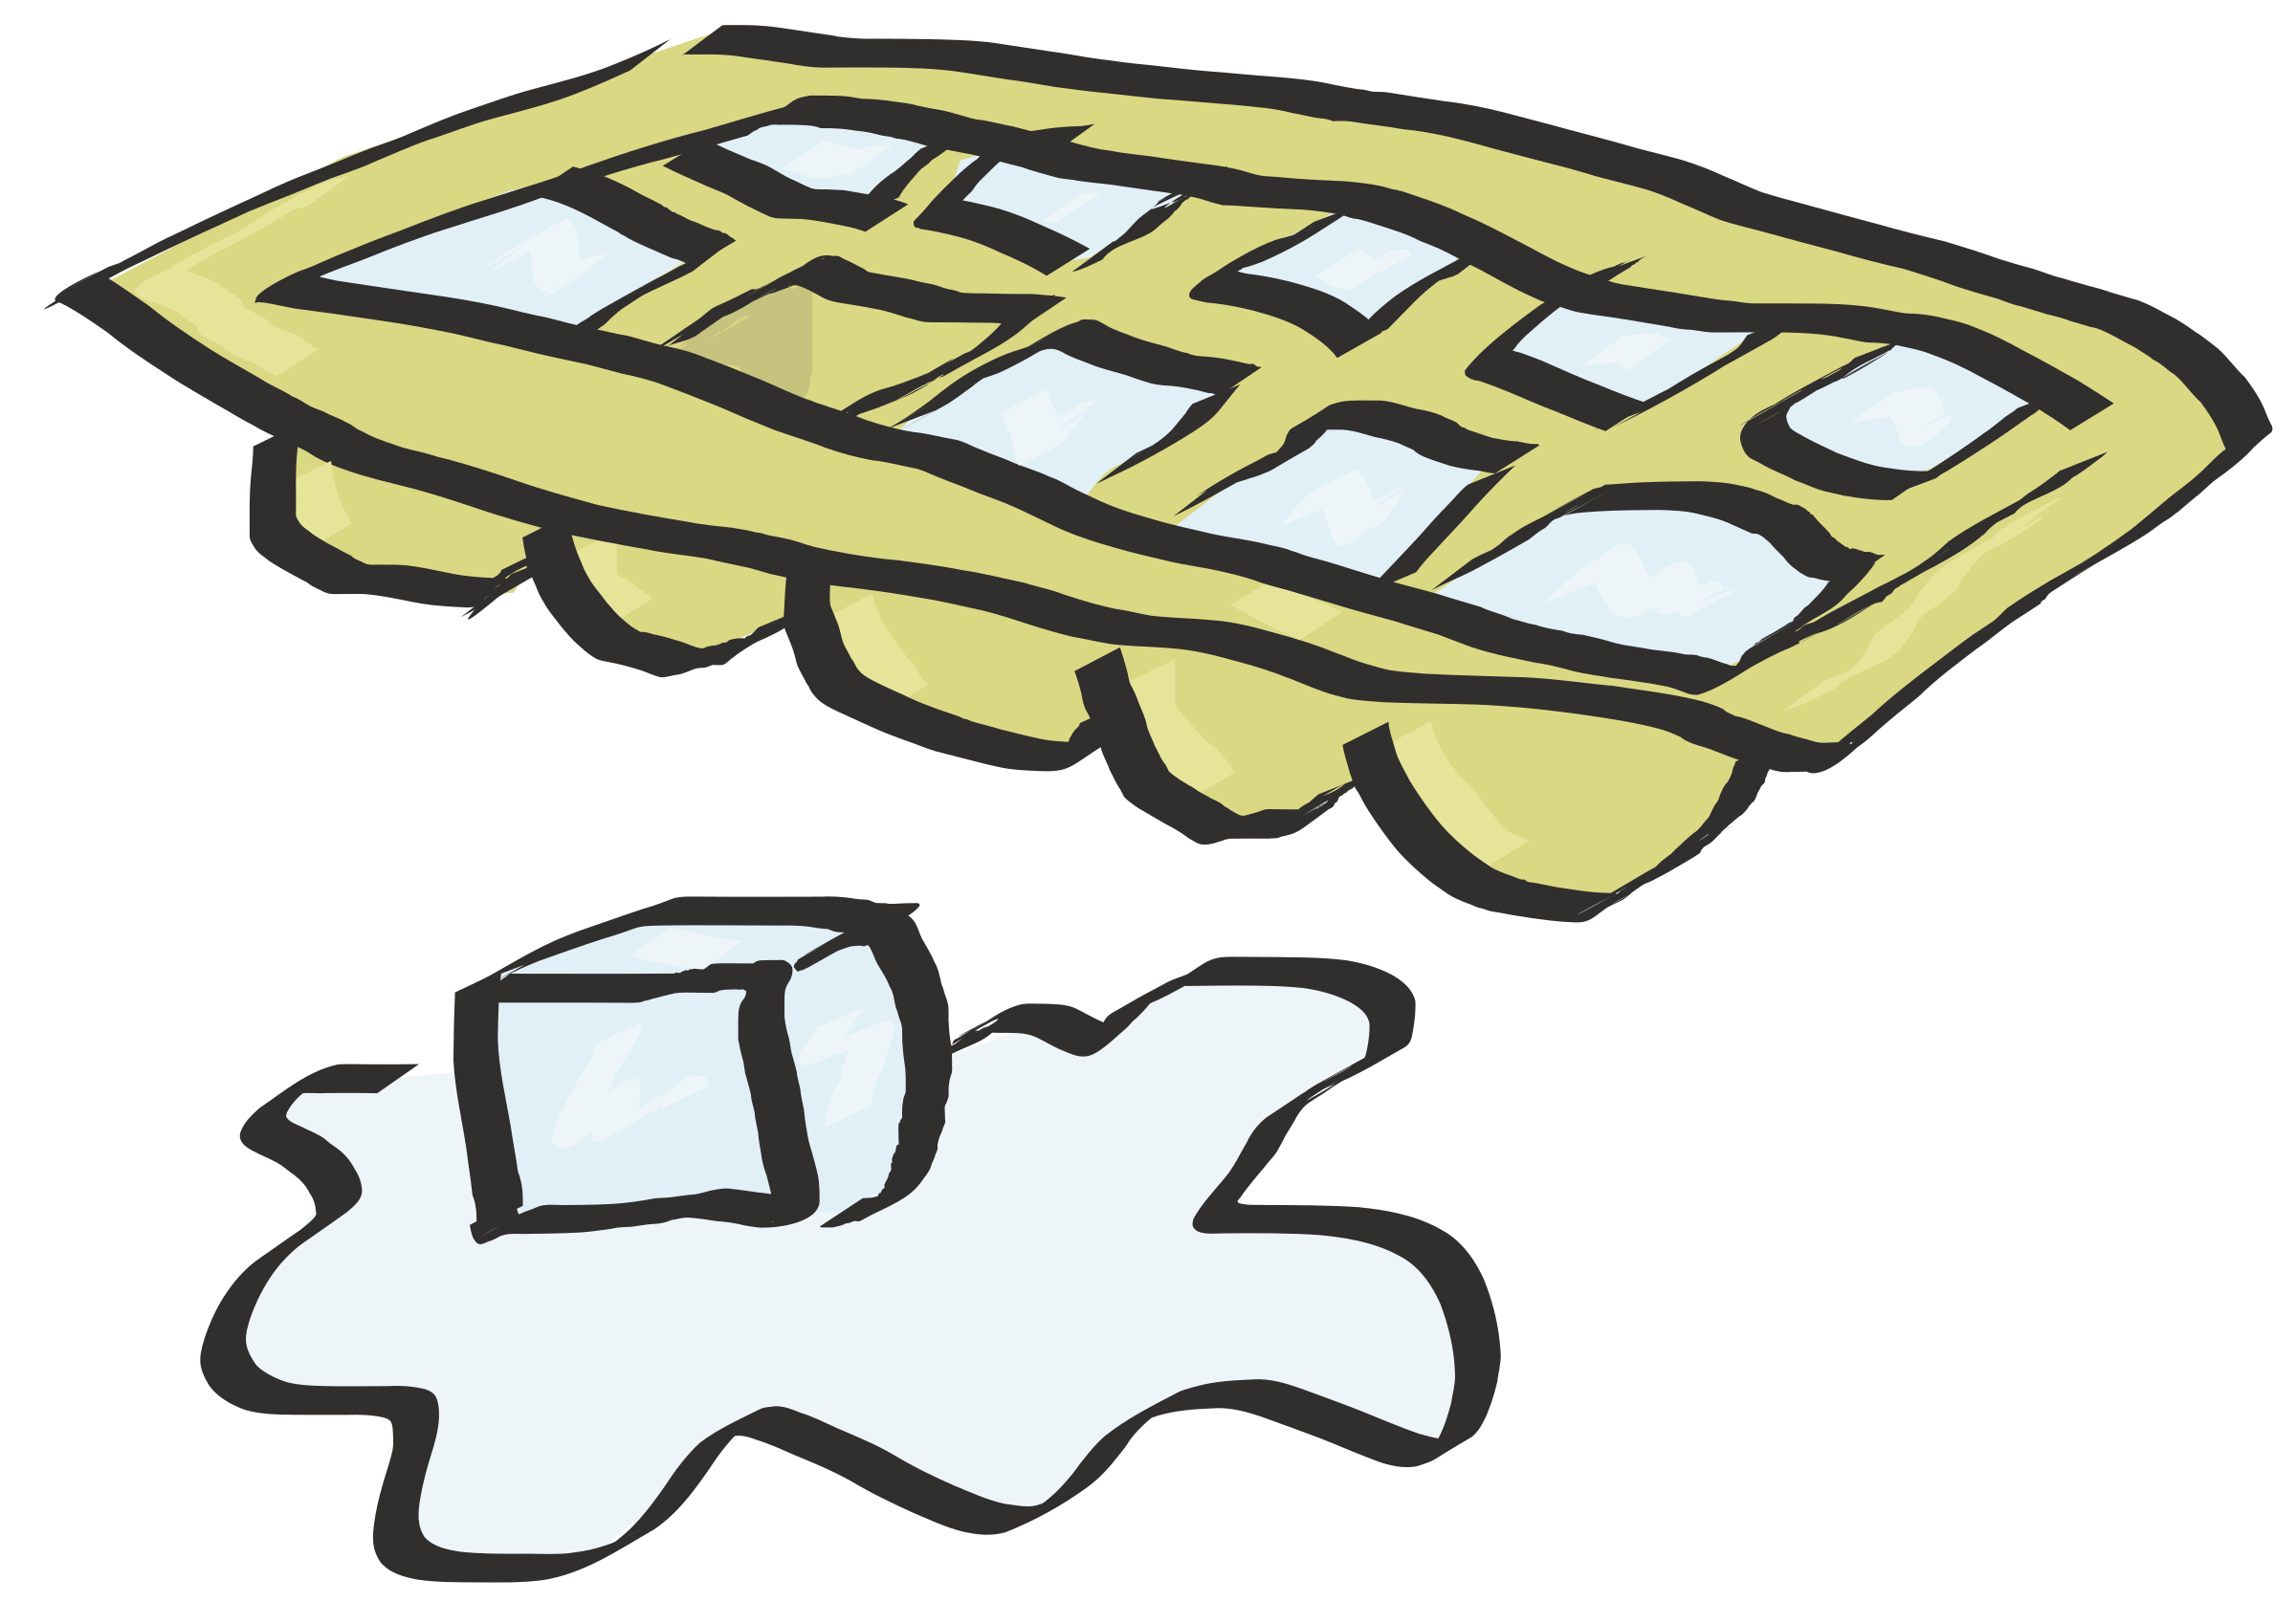 Cube big image png. Ice clipart ice tray